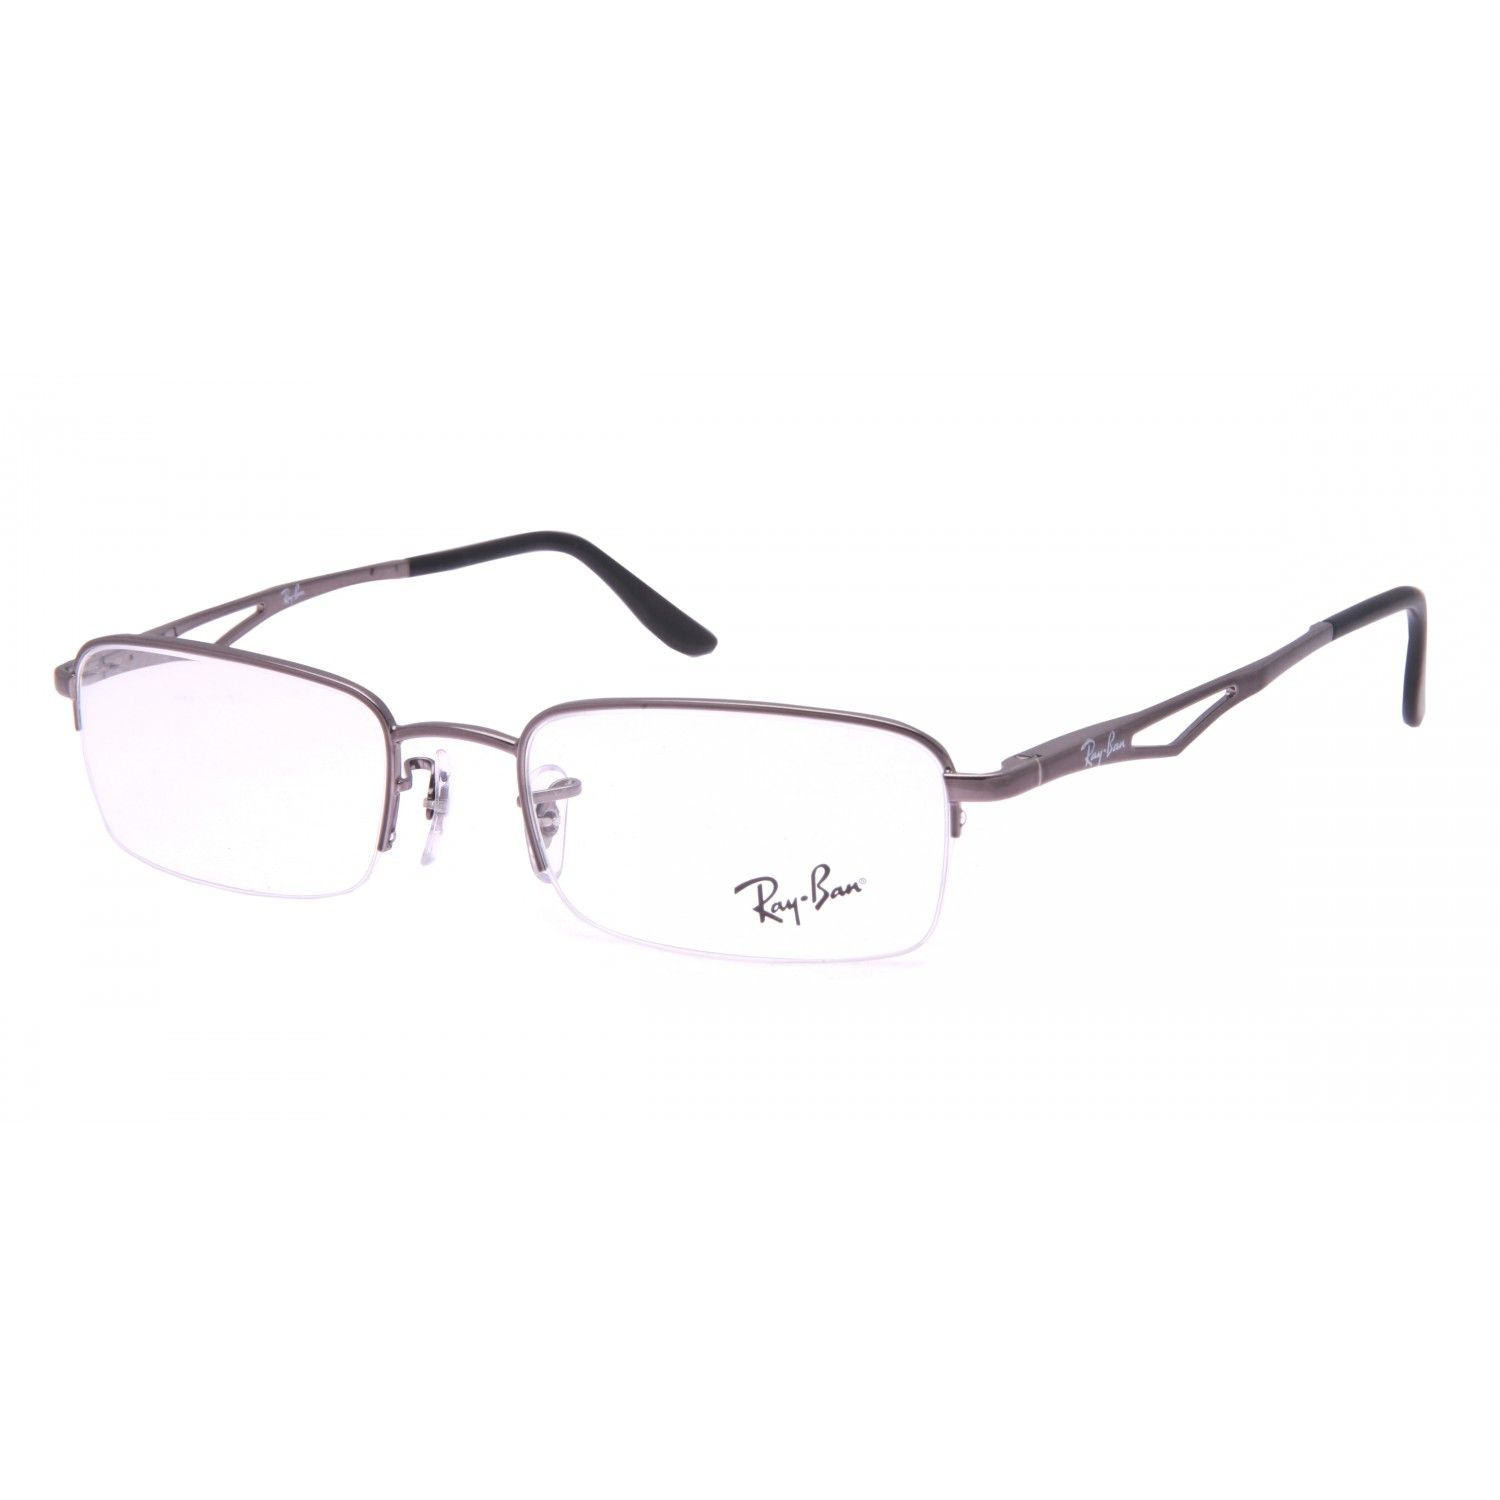 4650dfd88b9 Flat 18% Off on these Ray-Ban specs